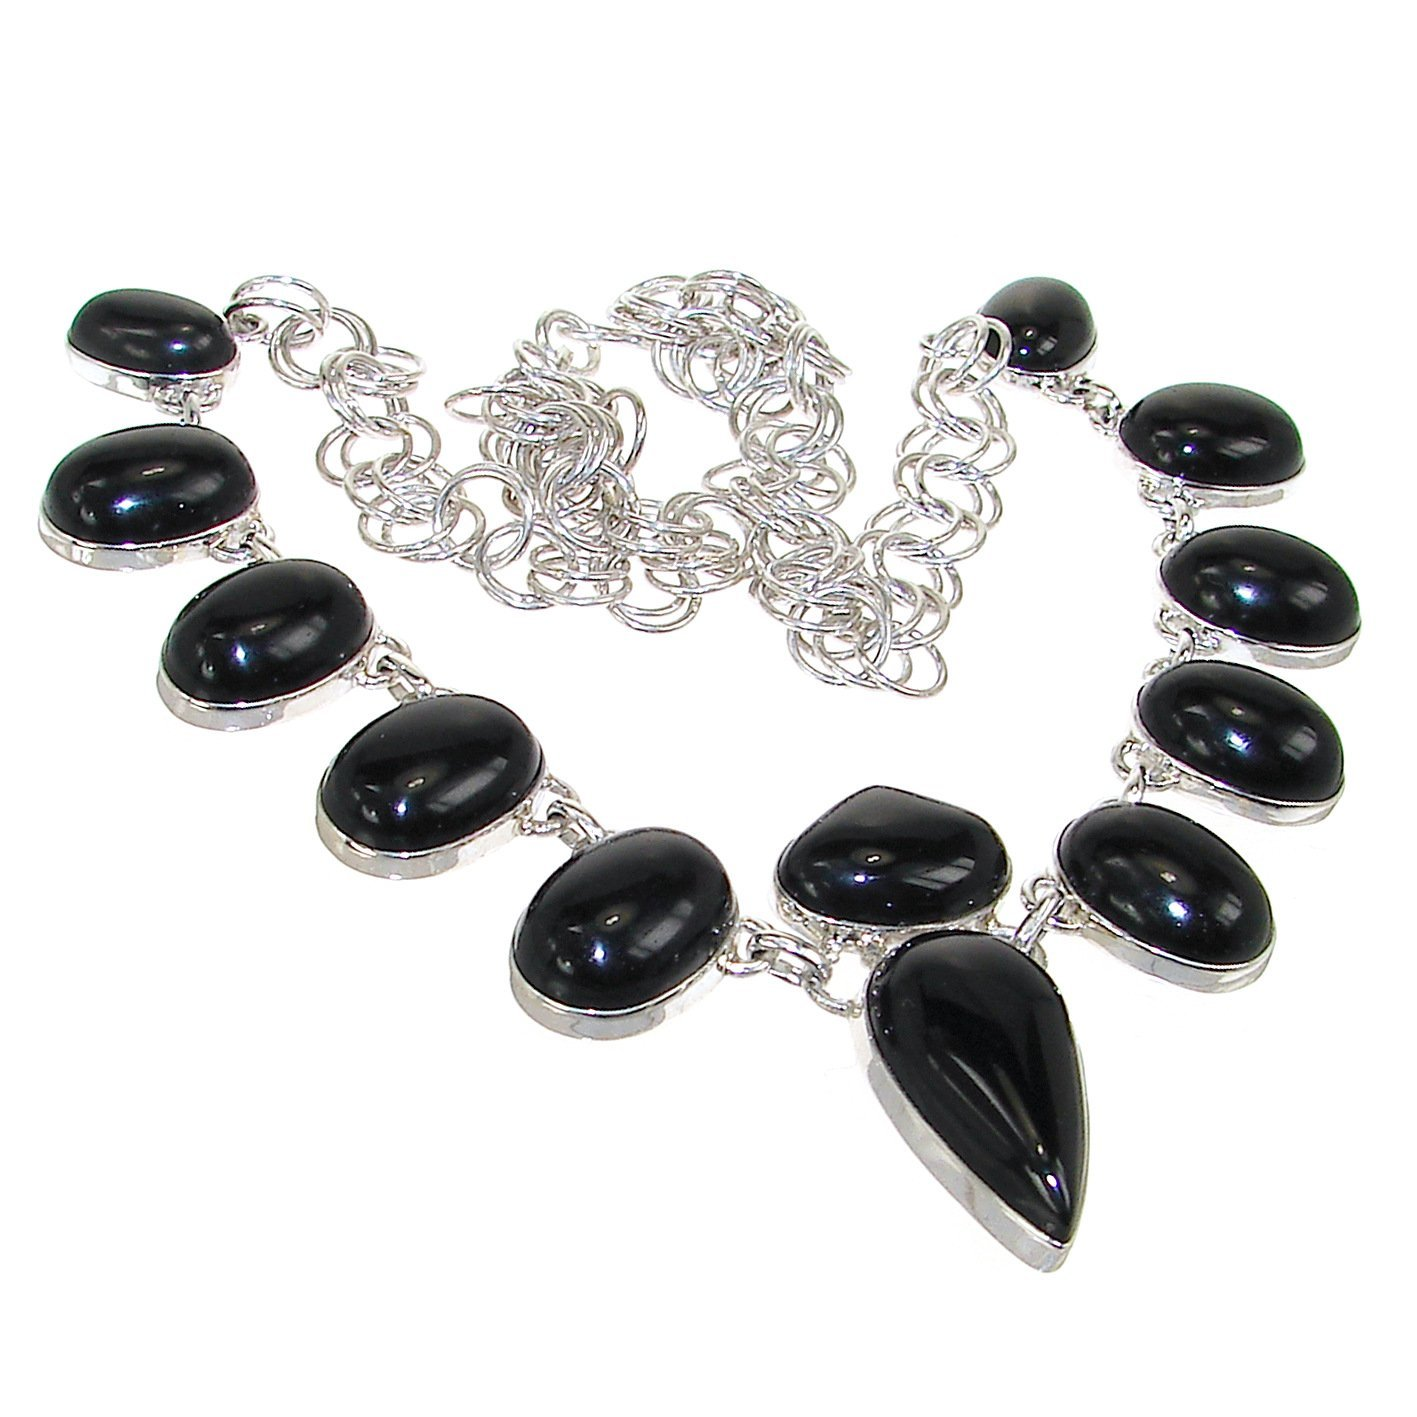 Elegant Onyx Sterling Silver Necklace 17 inches long